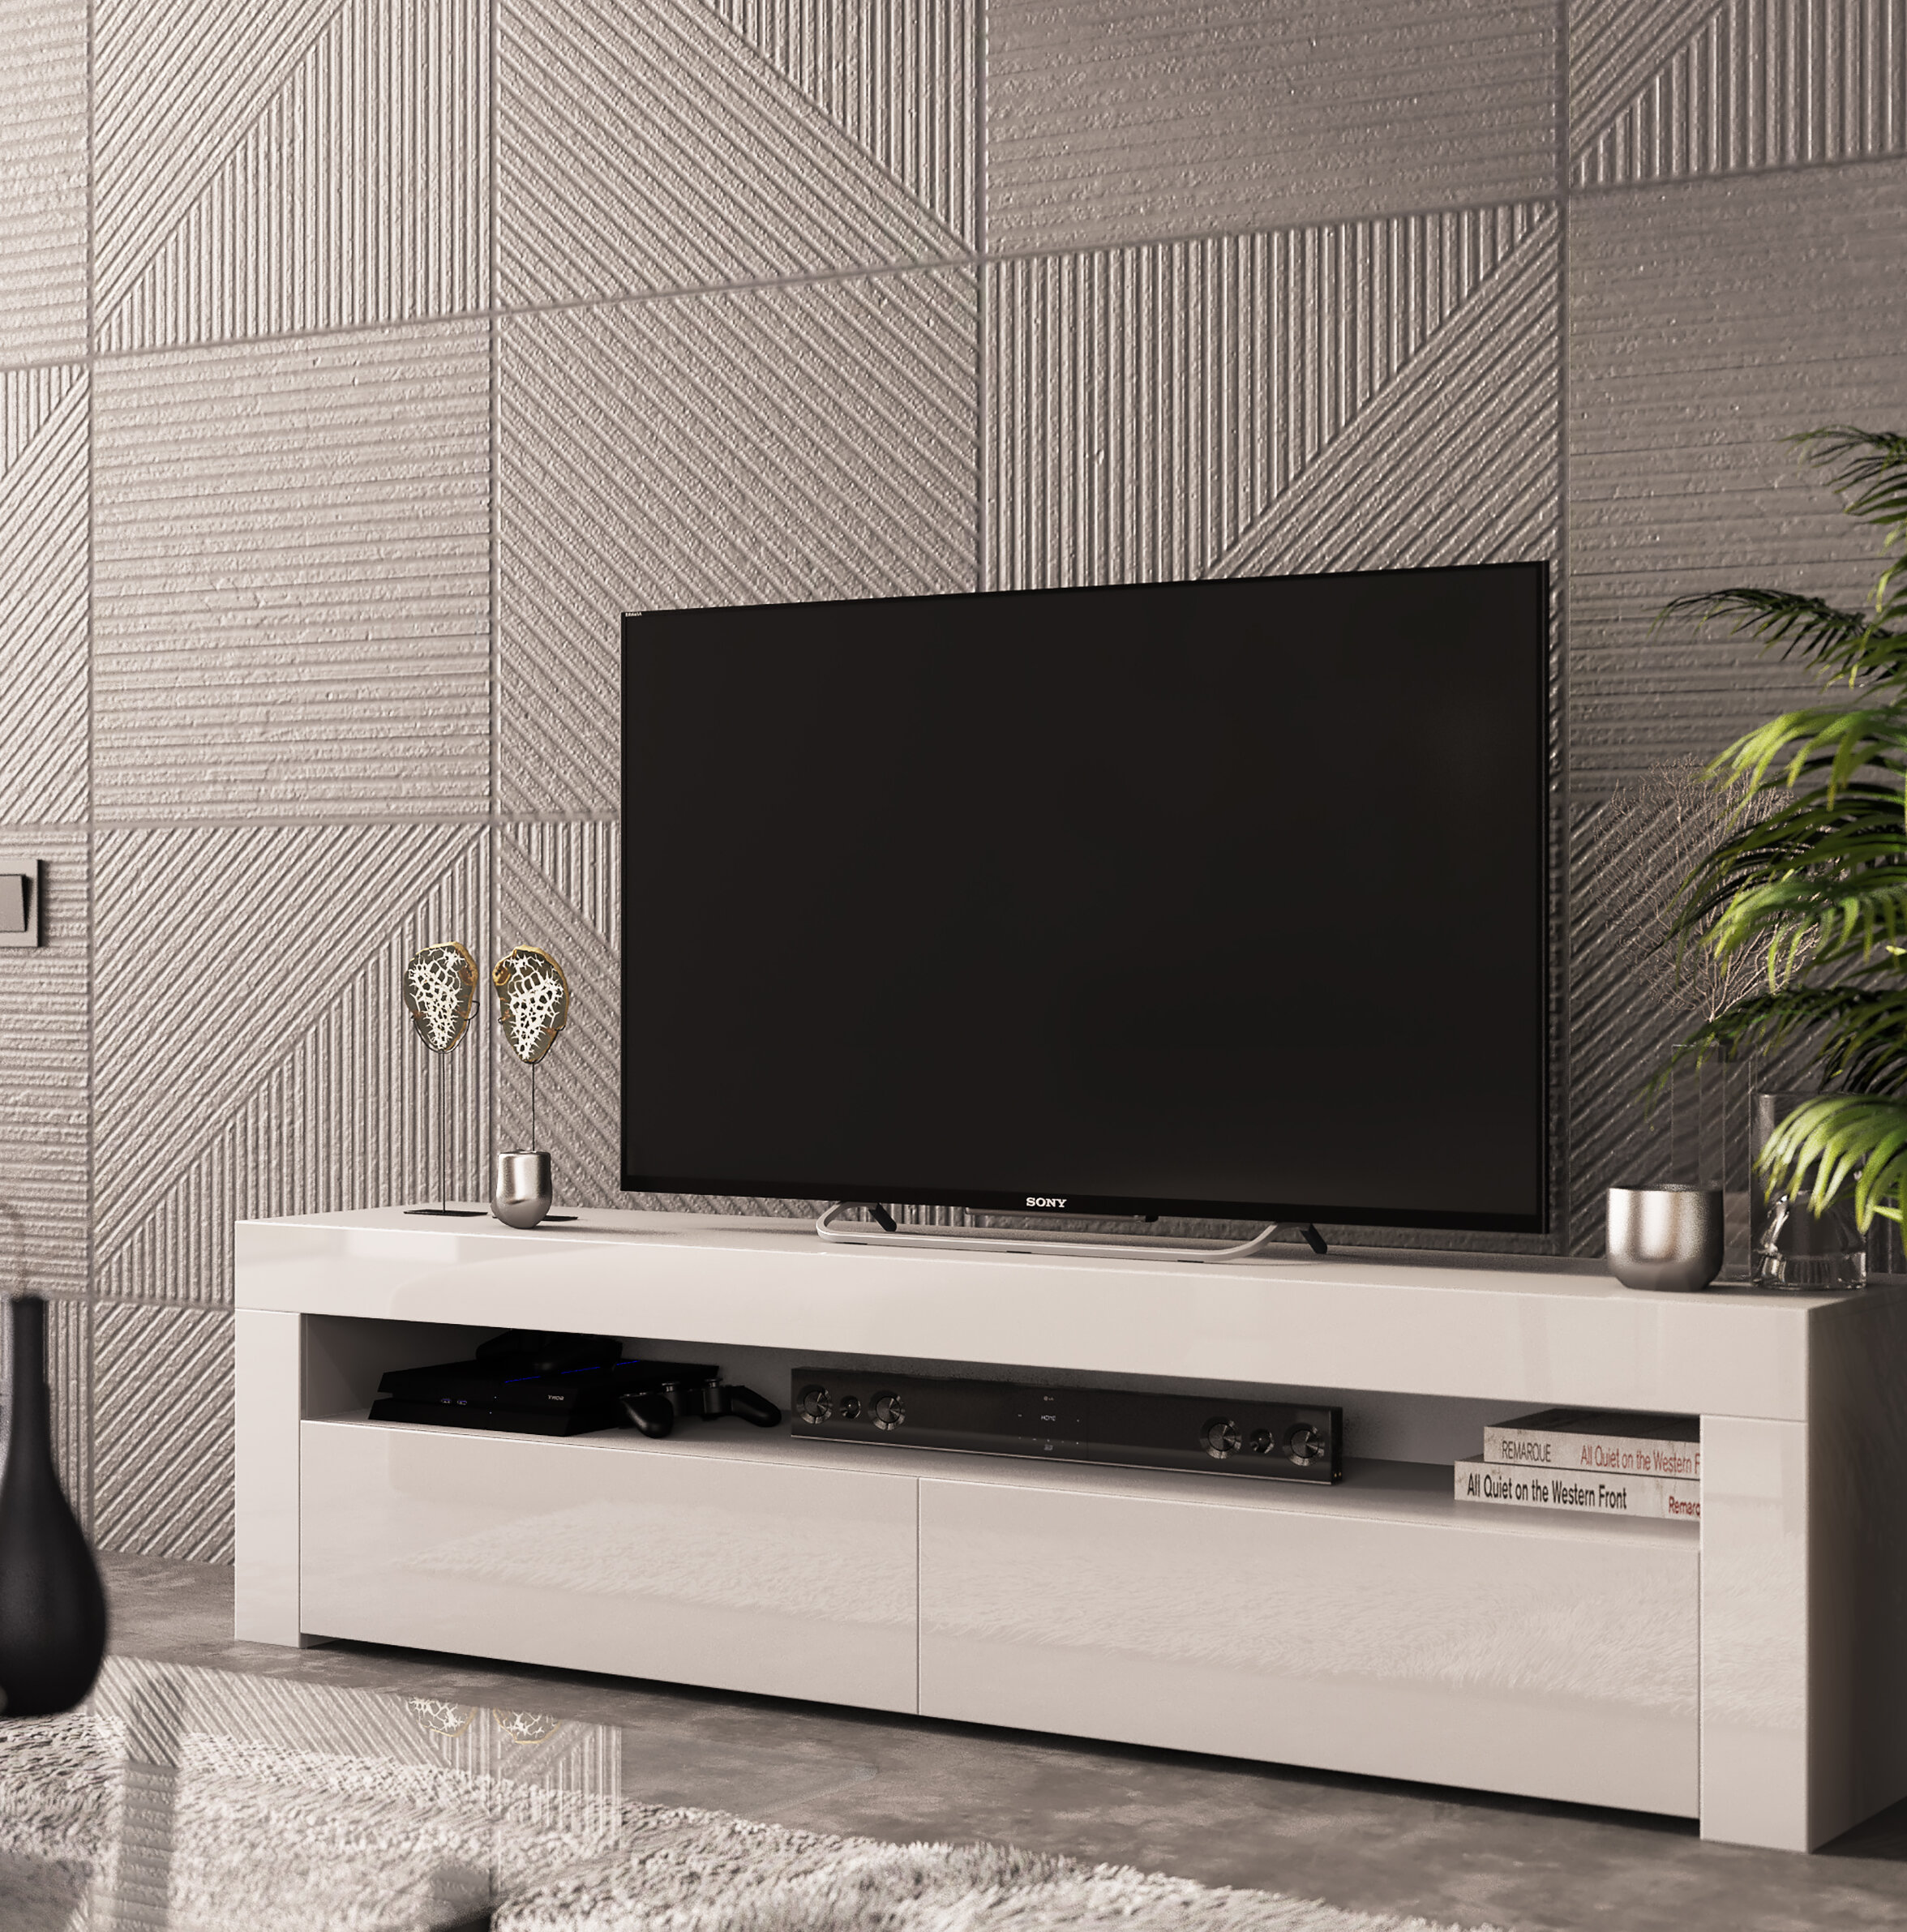 Ebern Designs Camargue Tv Stand For Tvs Up To 65 Reviews Wayfair Co Uk